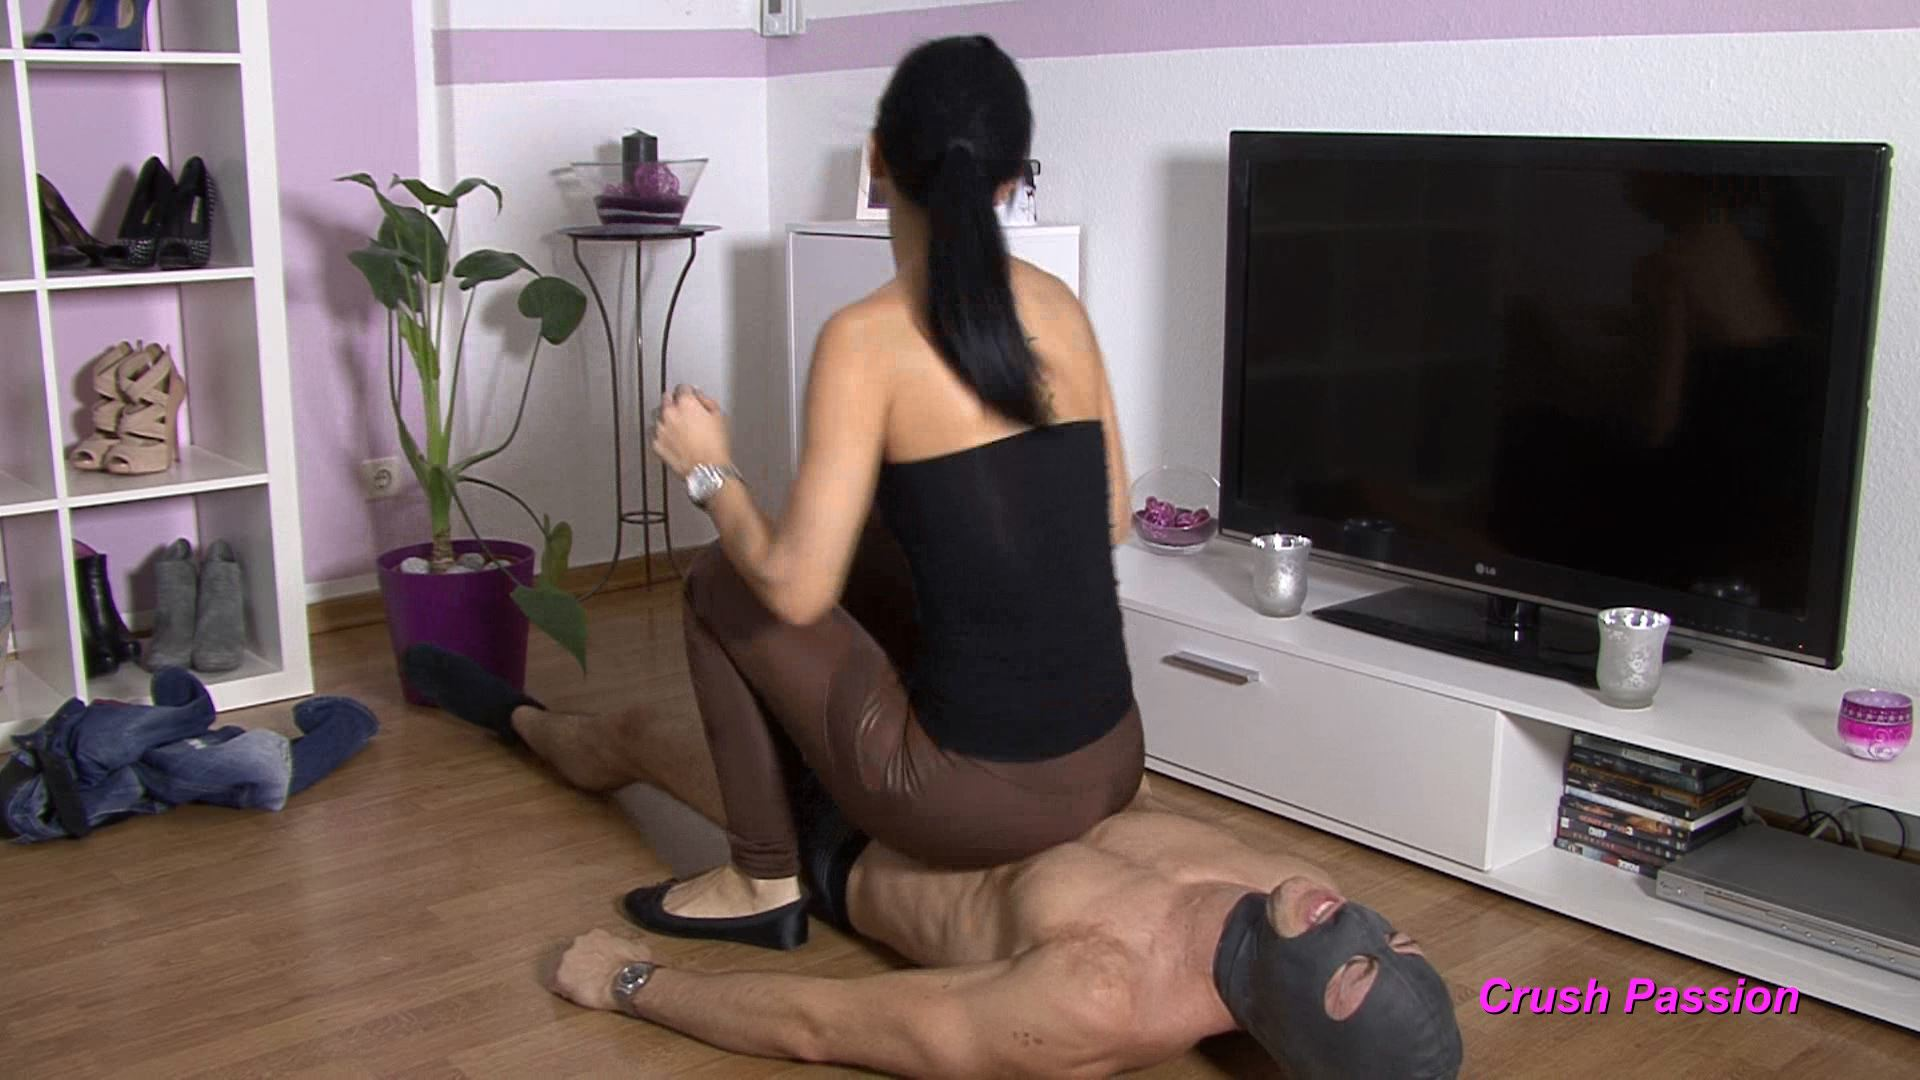 Mistress Chanel In Scene: Slave Under My Ass - CLIPS4SALE / CRUSH PASSION - FULL HD/1080p/MP4